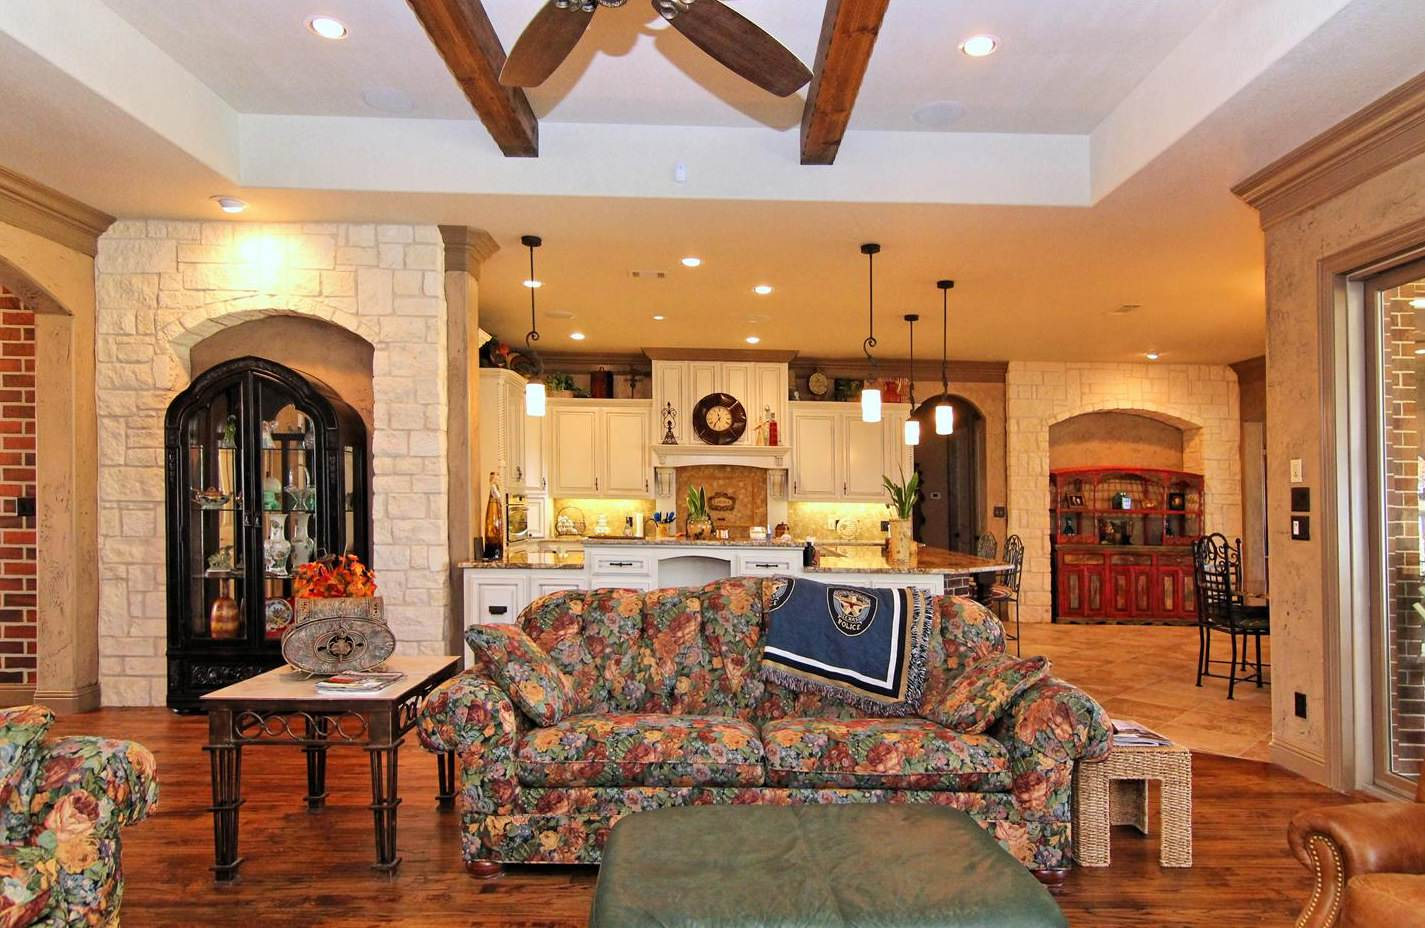 Texas Tudor - living room/kitchen